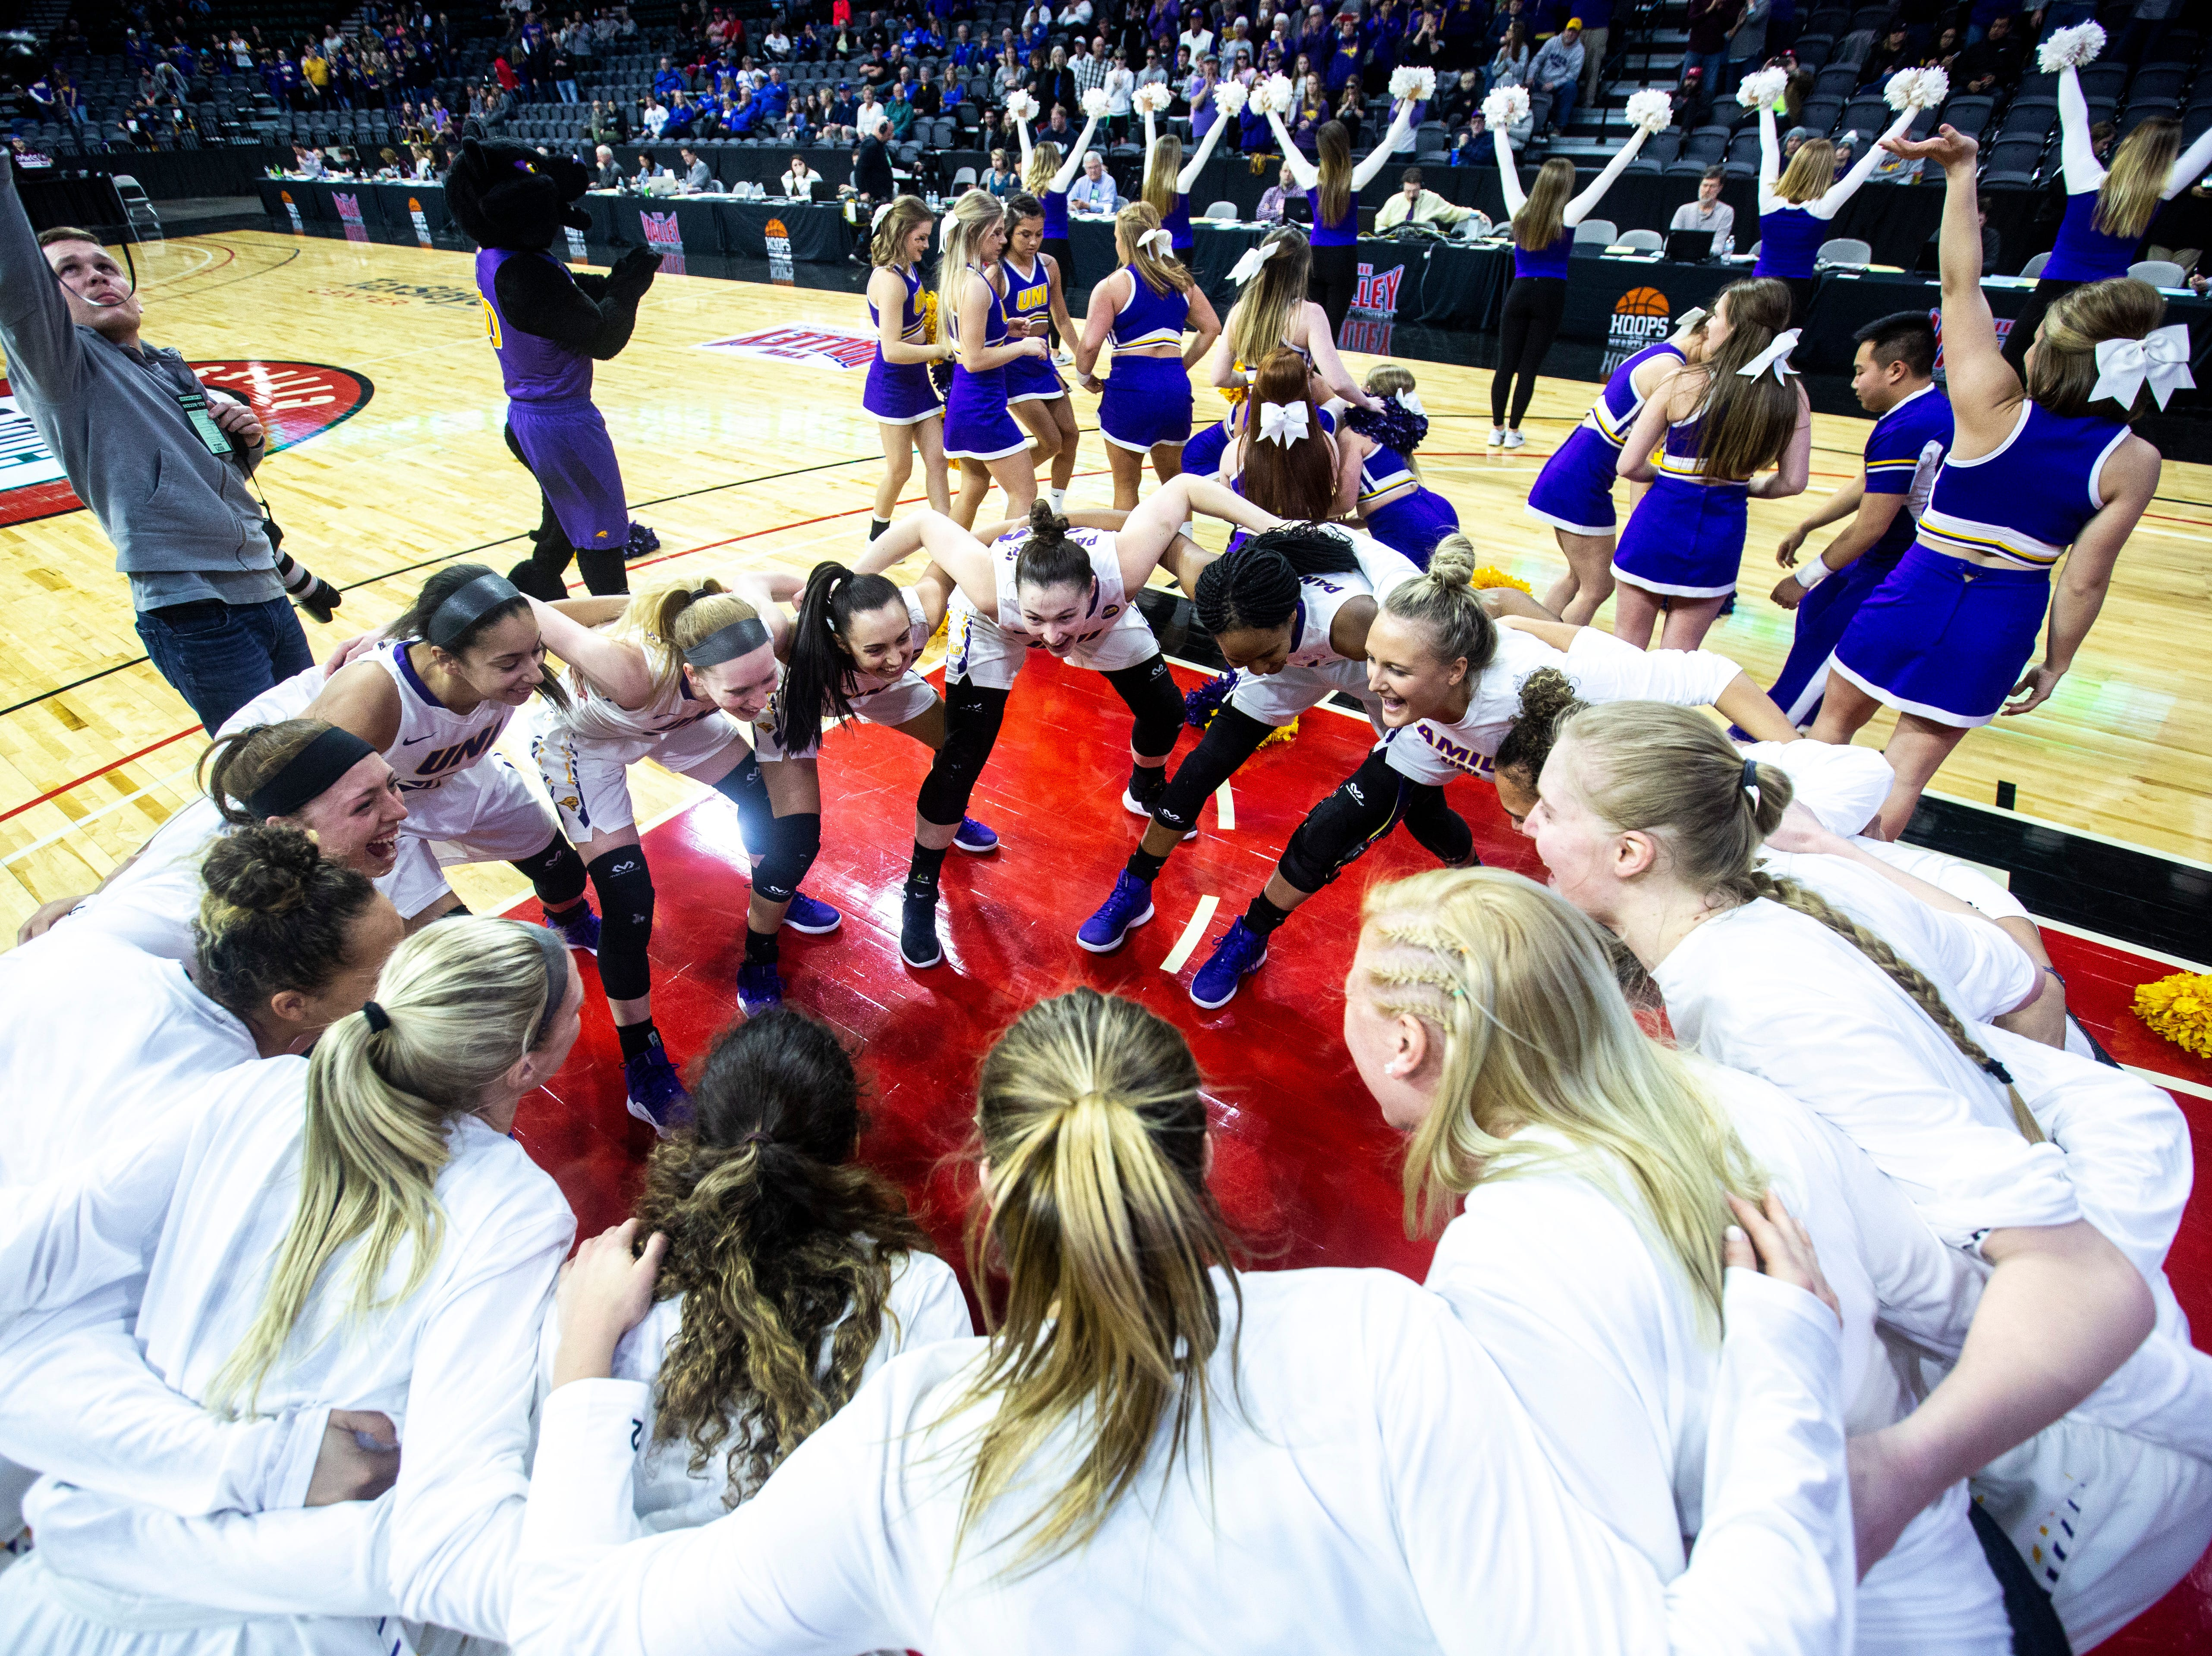 Northern Iowa Panthers following introductions during a NCAA Missouri Valley Conference women's basketball quarterfinal tournament game, Friday, March 15, 2019, at the TaxSlayer Center in Moline, Illinois.